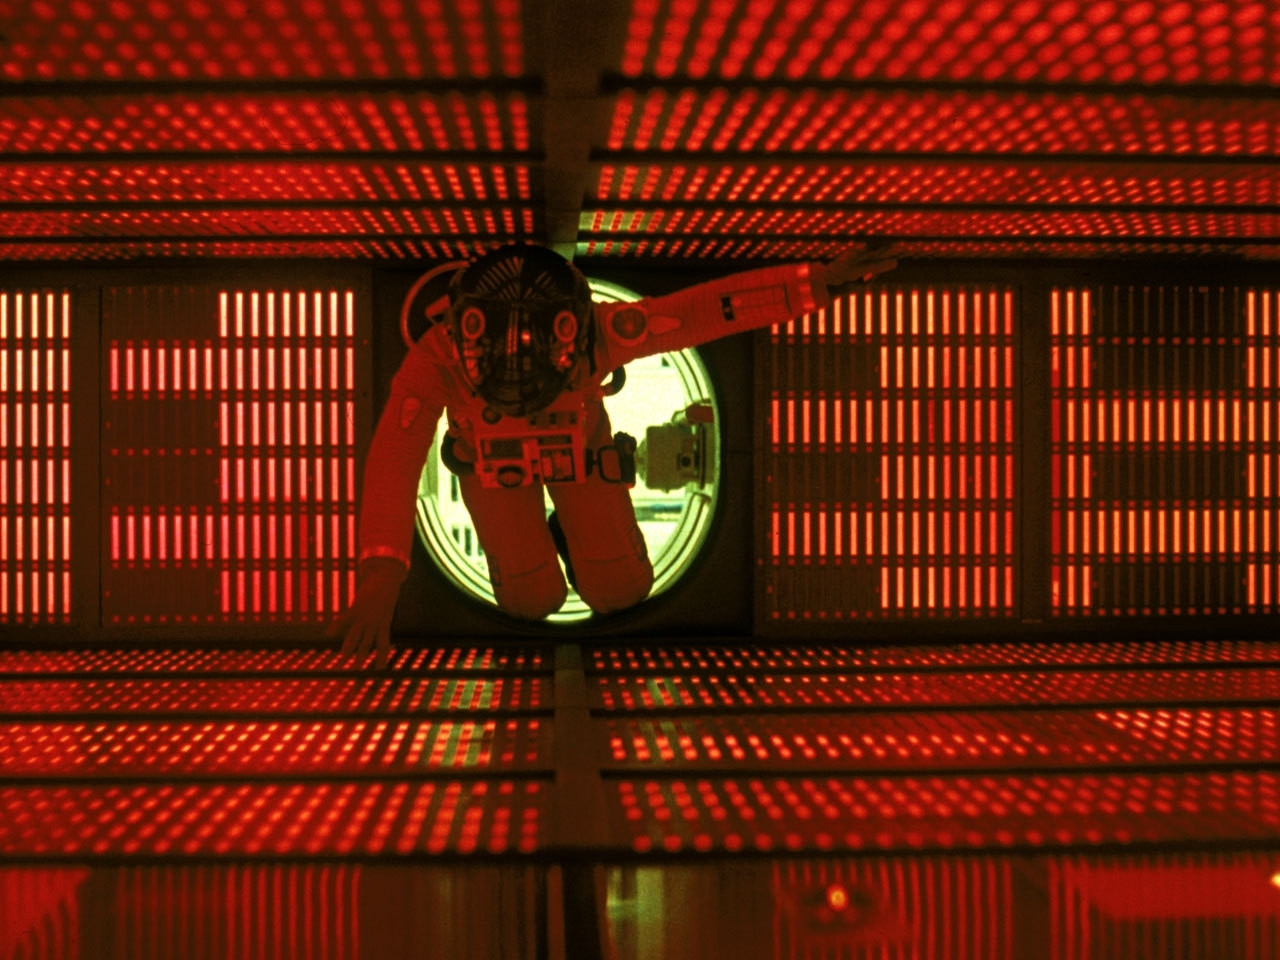 2001: a space odyssey - gorgeous desktop wallpaper backgrounds from